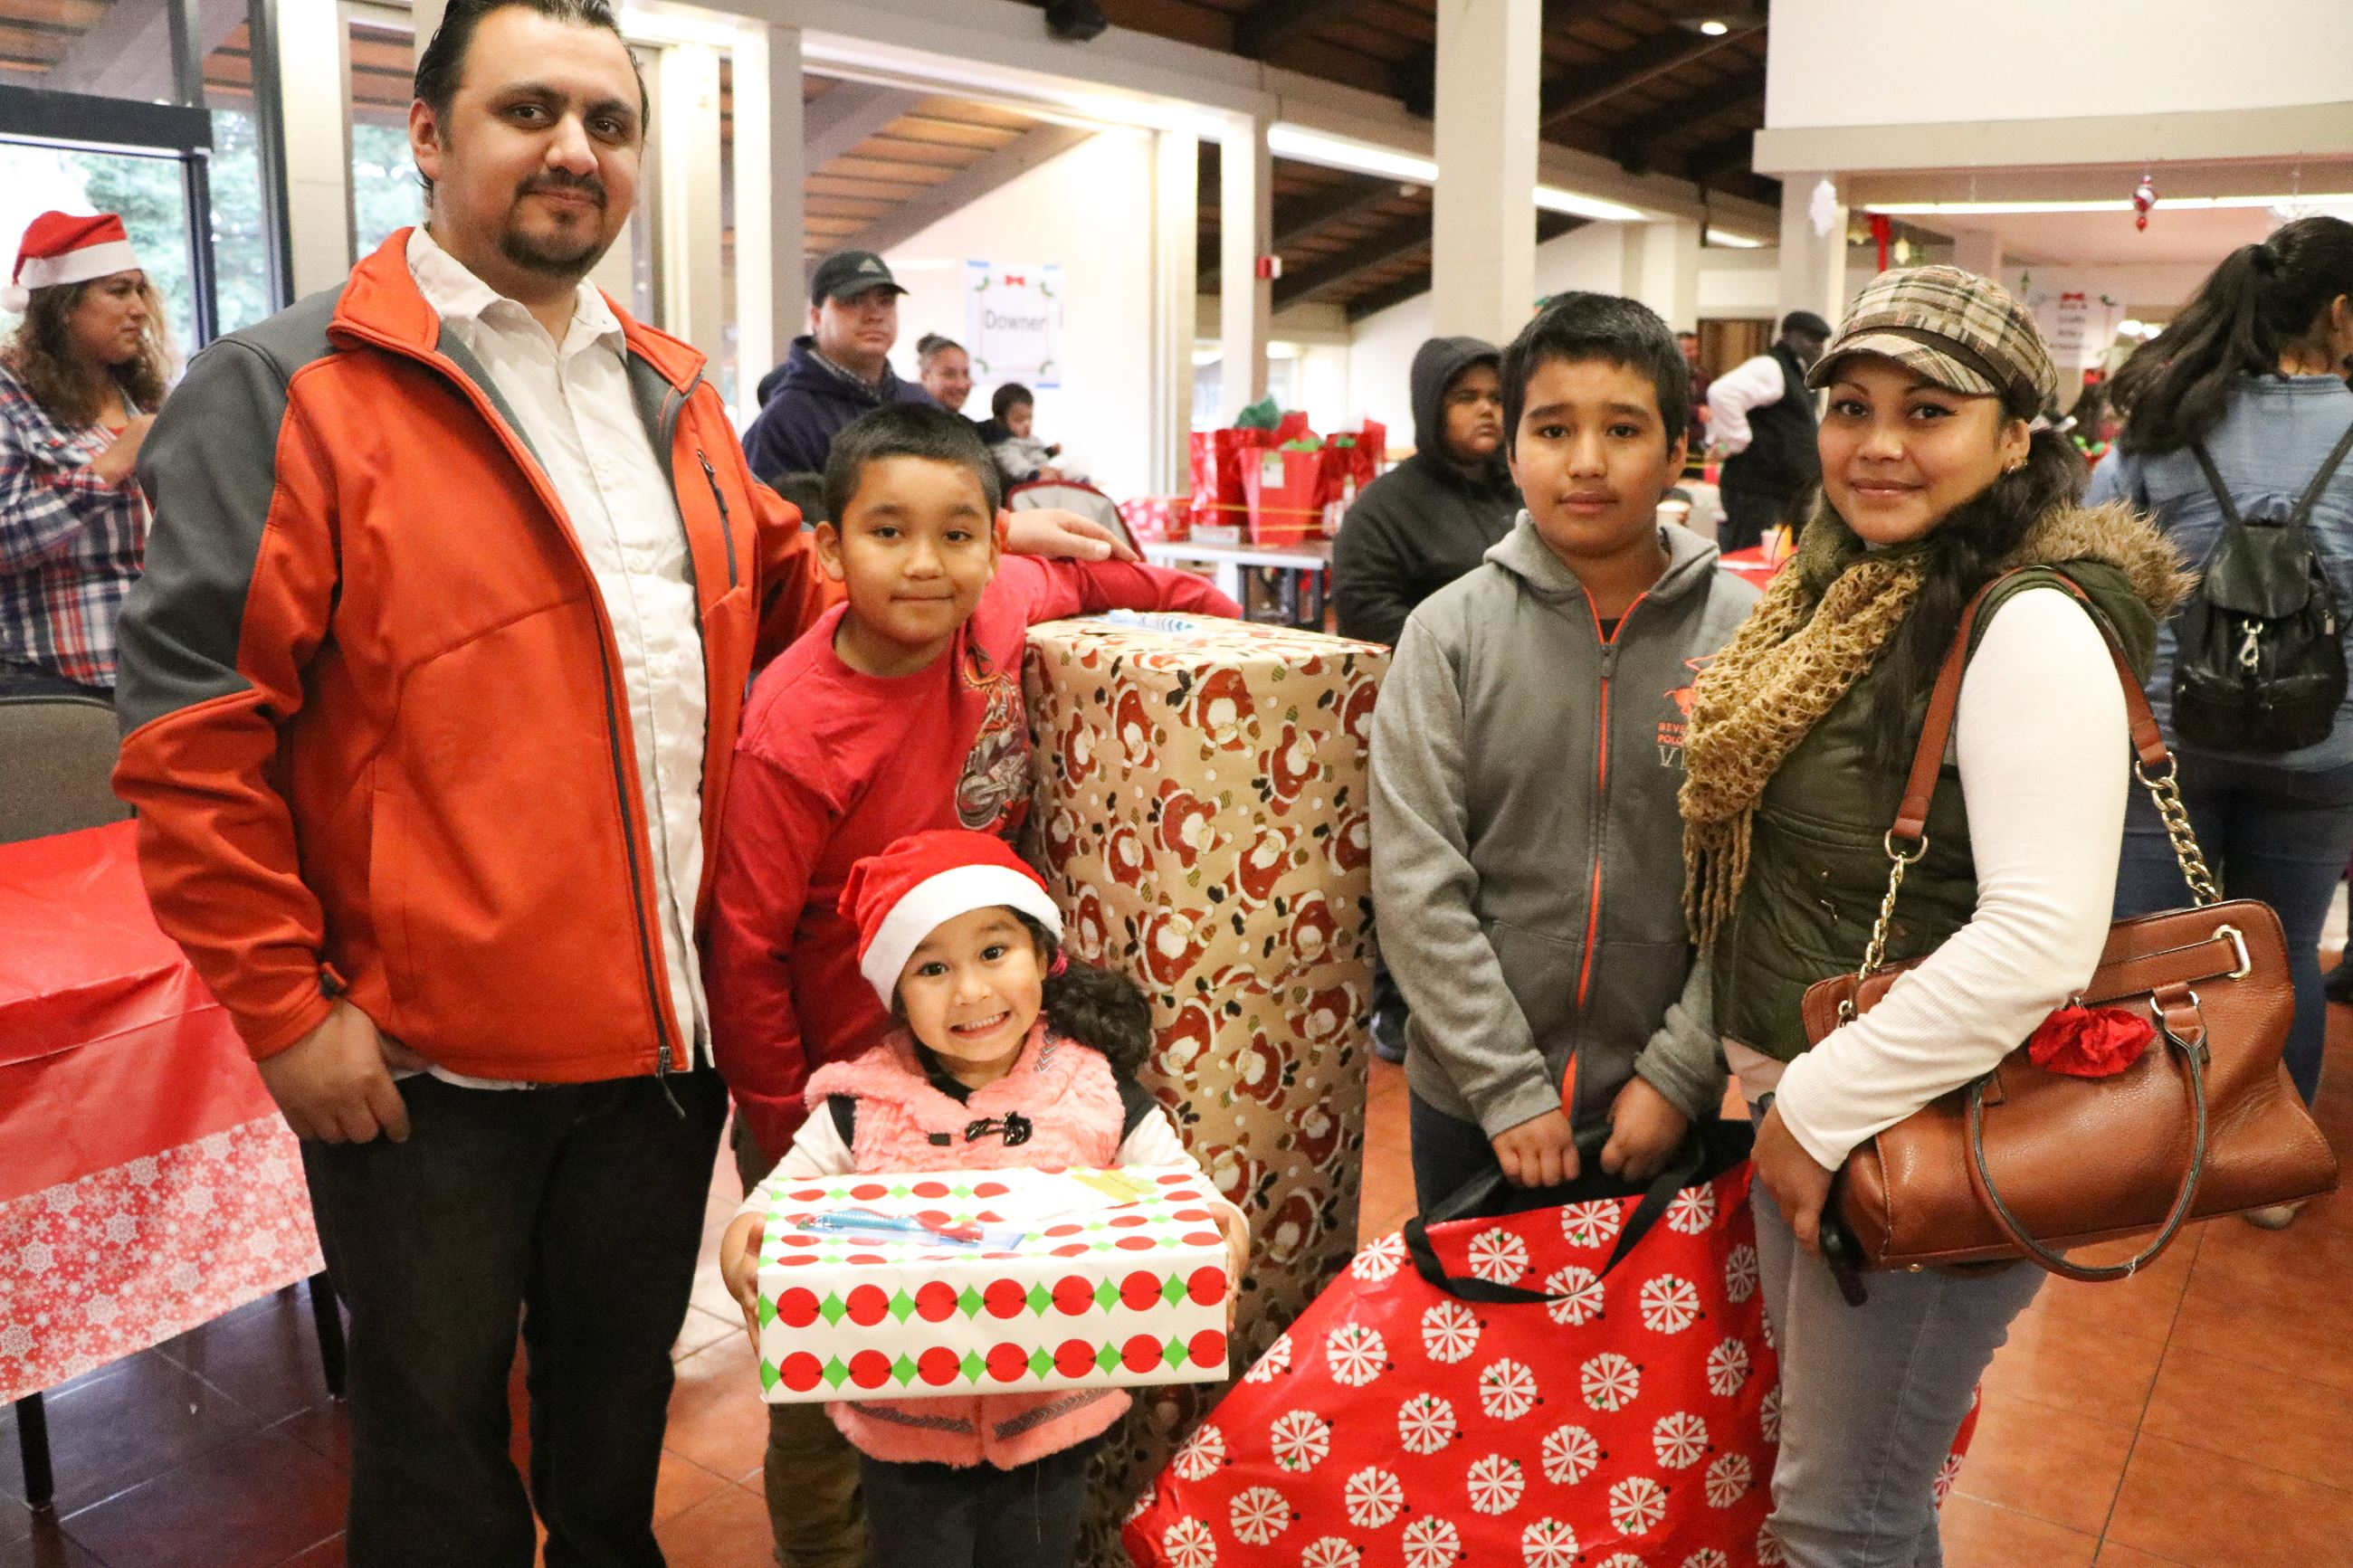 Family Receiving Gifts during Family Giving Tree Event